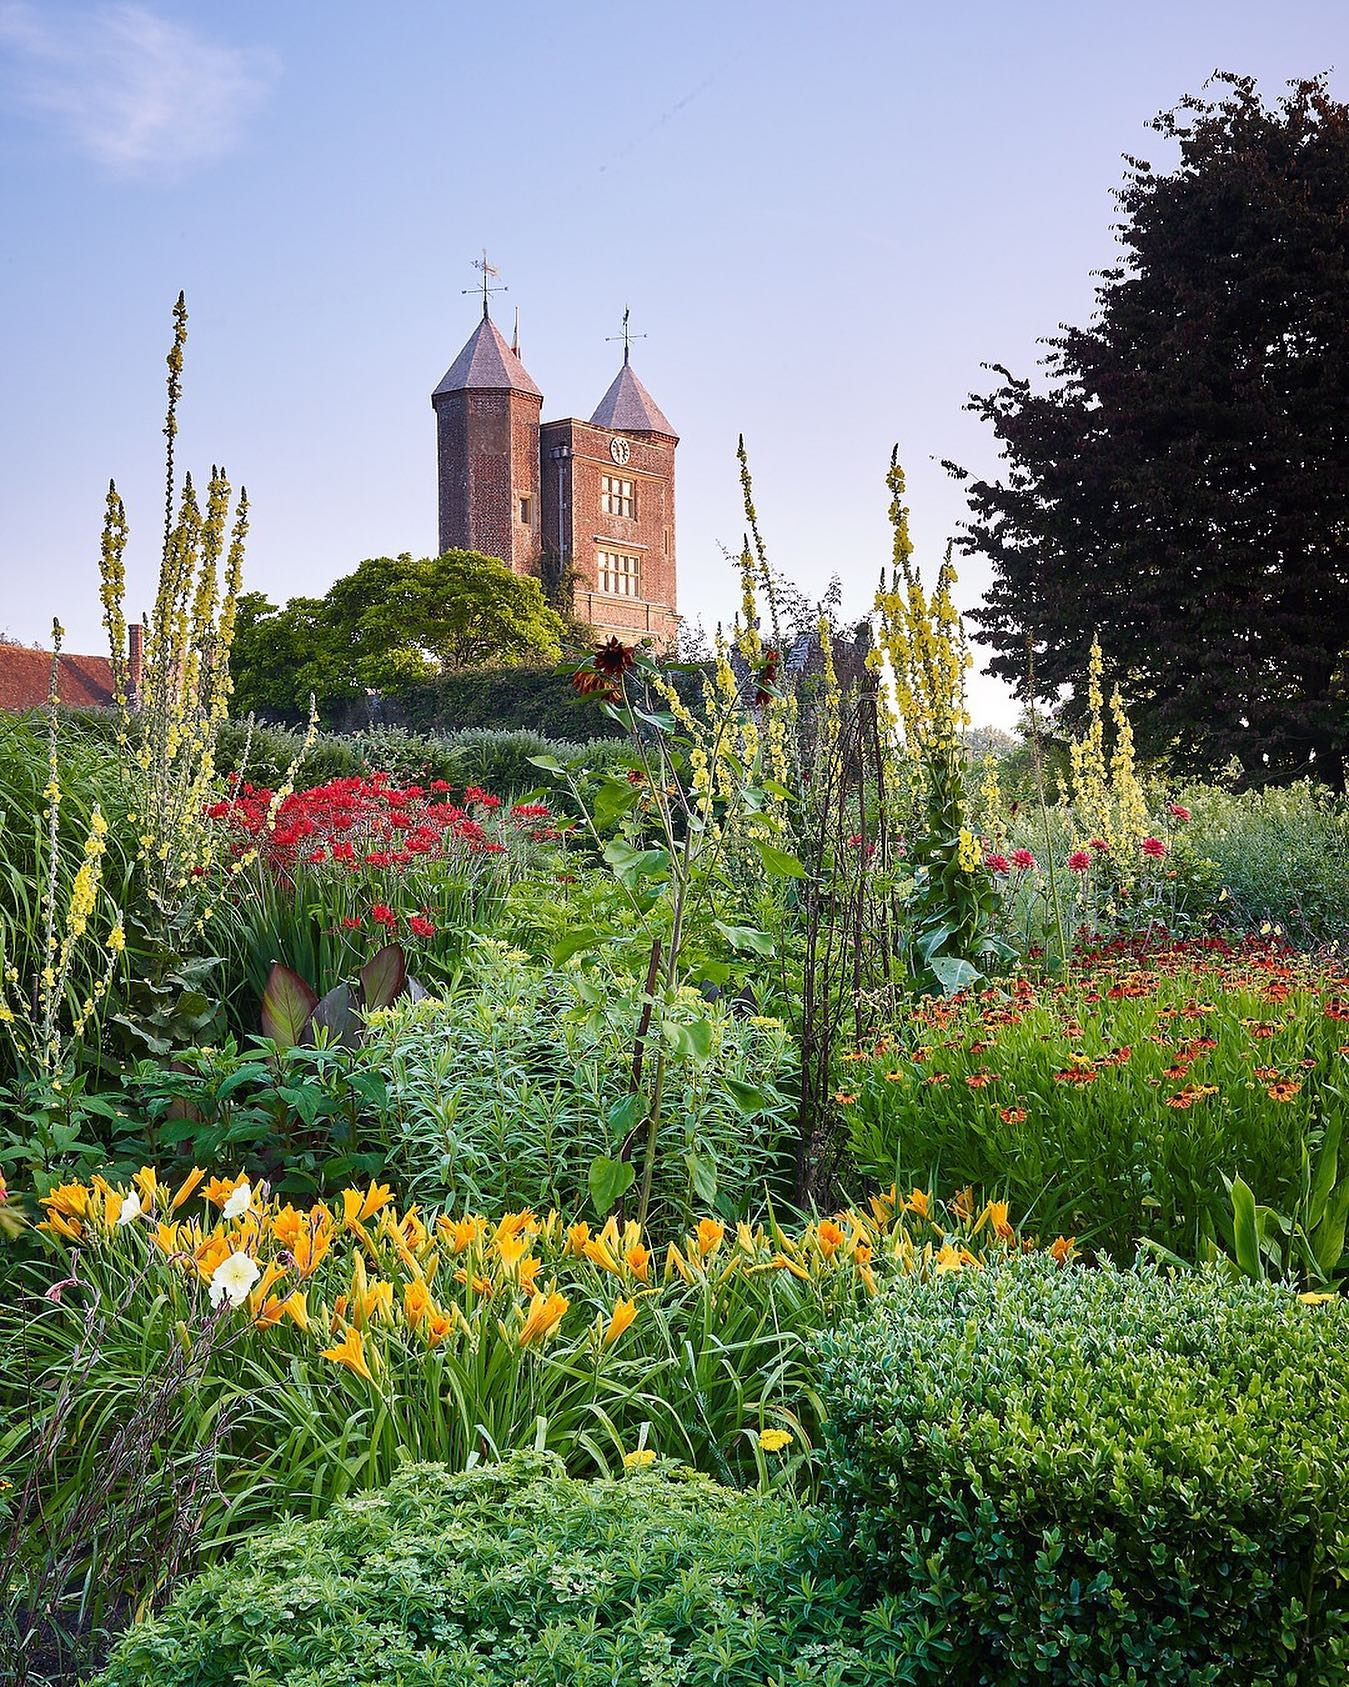 The Cottage Garden @sissinghurstcastlegardennt , the image taken from thousands to be the cover for my new book with Tim Richardson coming out on 1st September 2020. Published by @quarto.knows Frances Lincoln....#sissinghurst #sissinghurstcastle #sissinghurstgardens #sissinghurstthedreamgarden #franceslincolnpublishers #franceslincoln #timrichardson #phaseonephoto #gardenphotography #gardenphotographer #cottagegarden